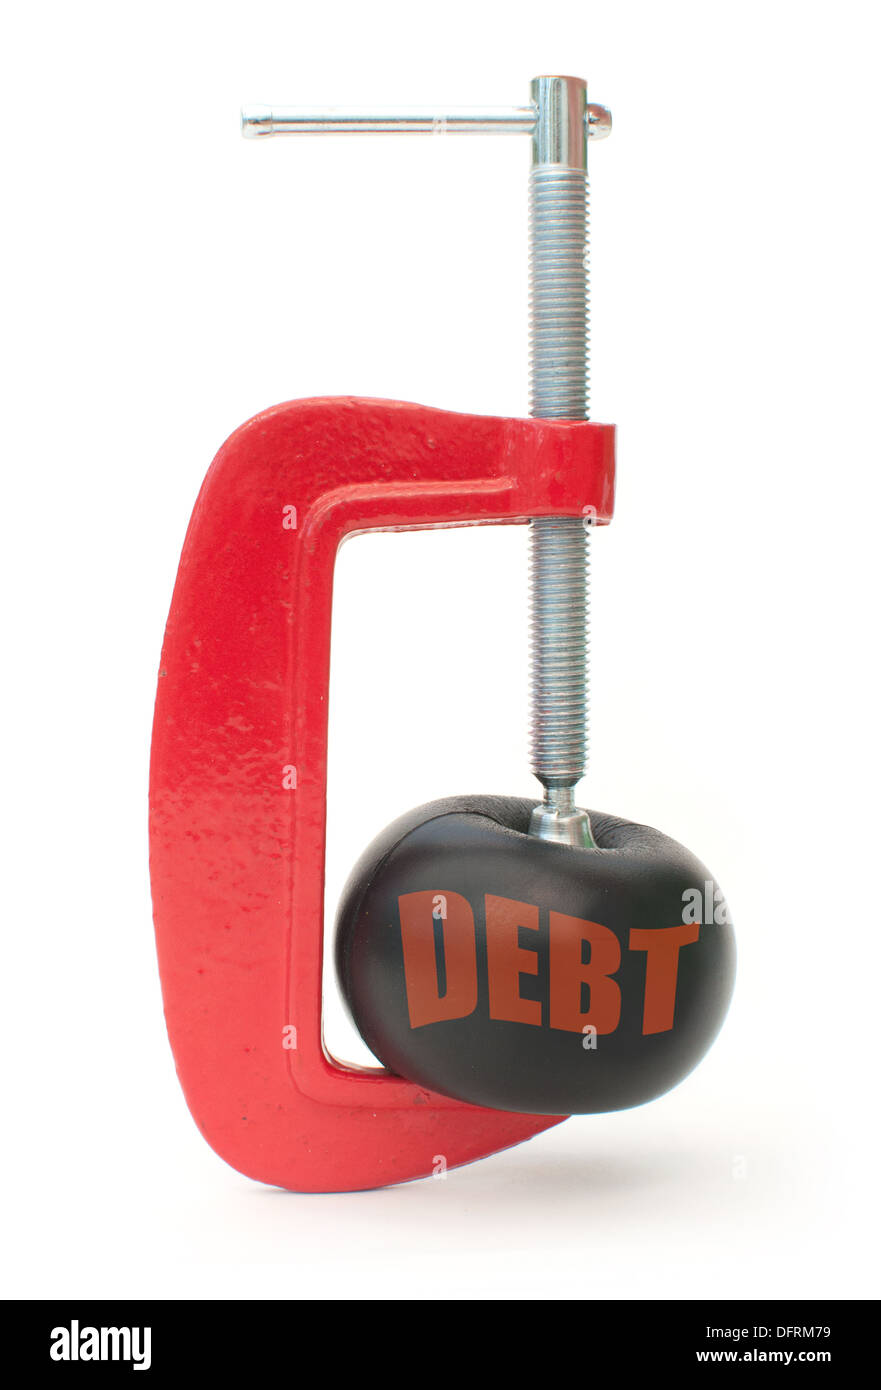 Debt reduction - Stock Image